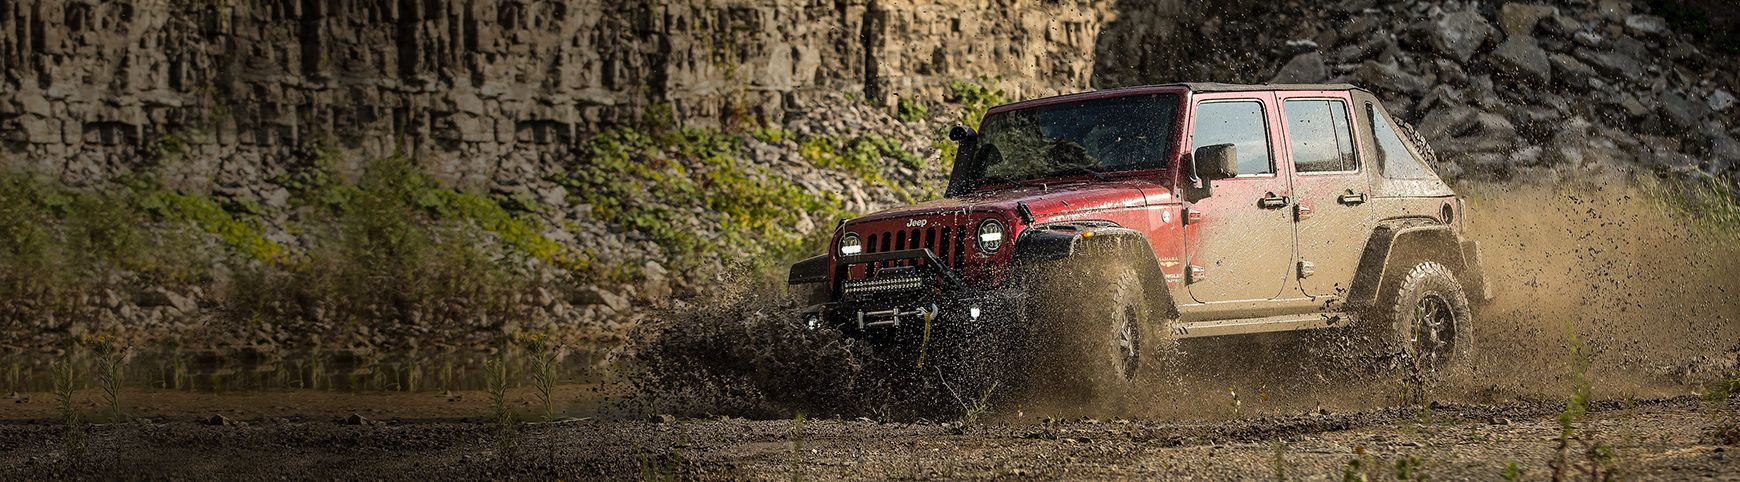 Jeep Wrangler Accessories & Parts | Canadian Tire